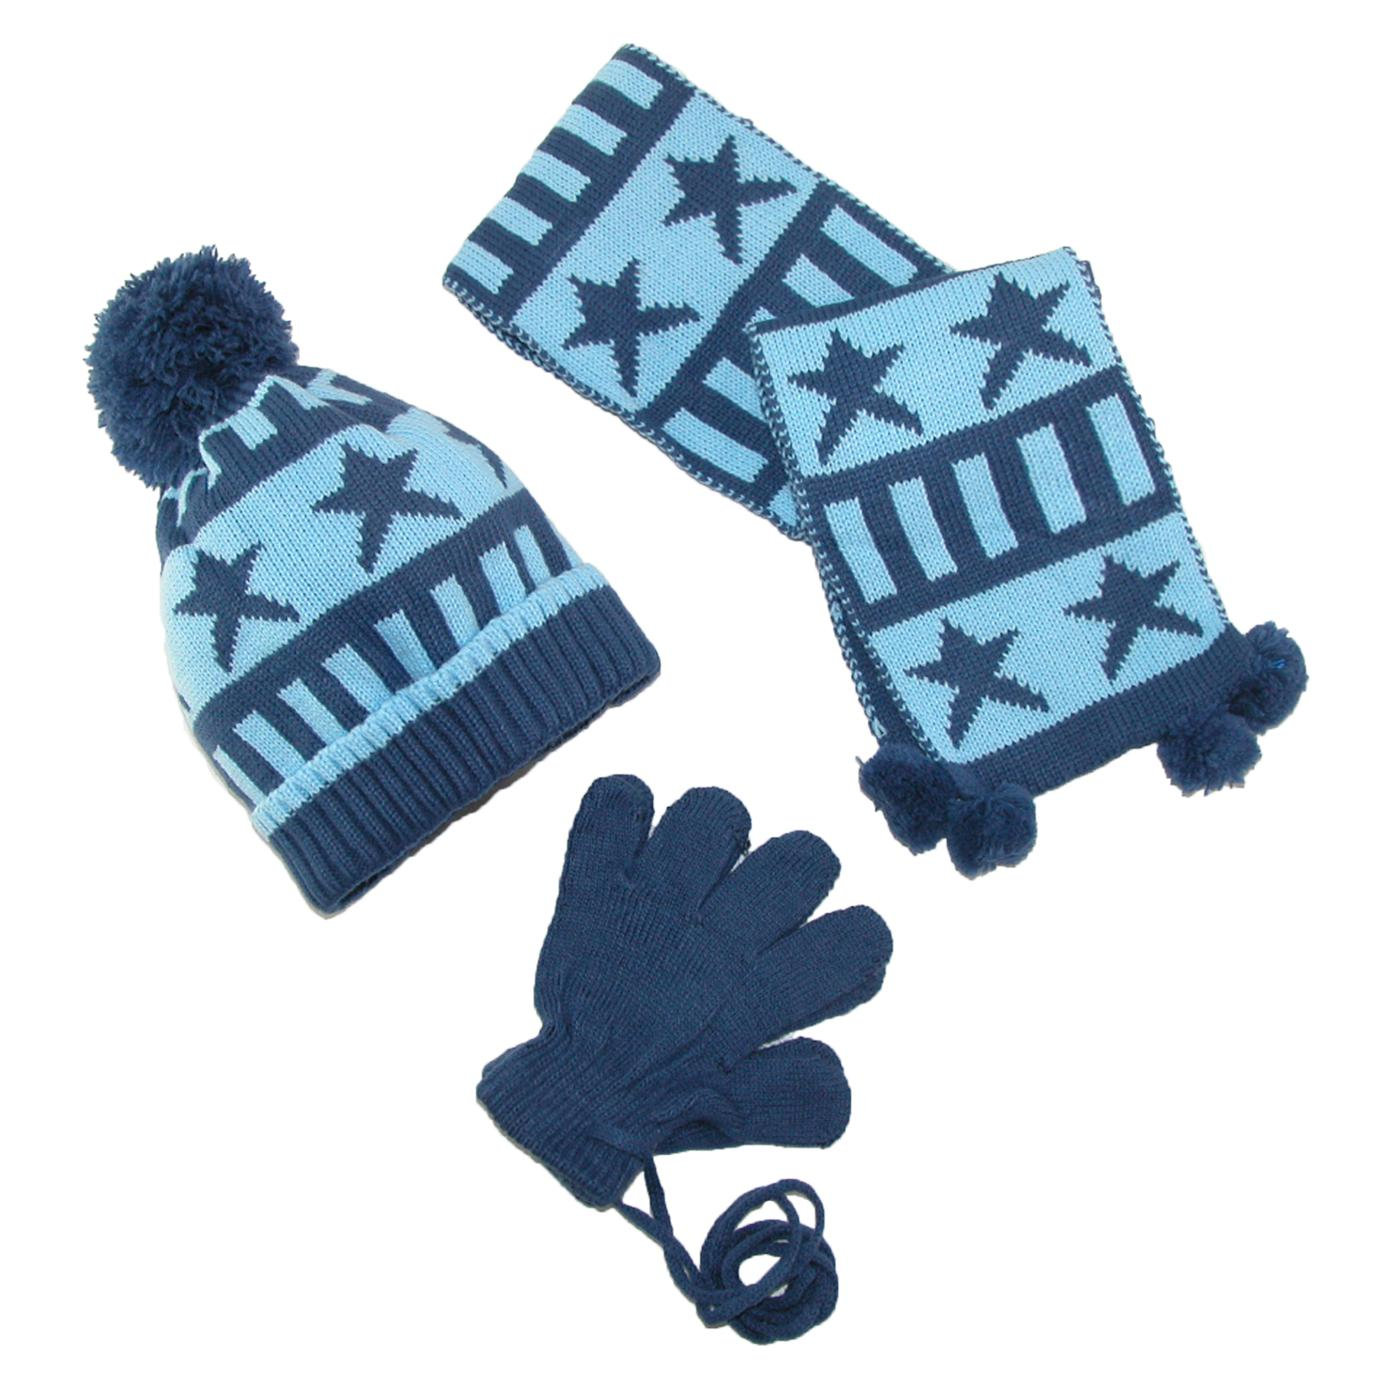 Gloves clipart beanie. Scarf and suggest kids